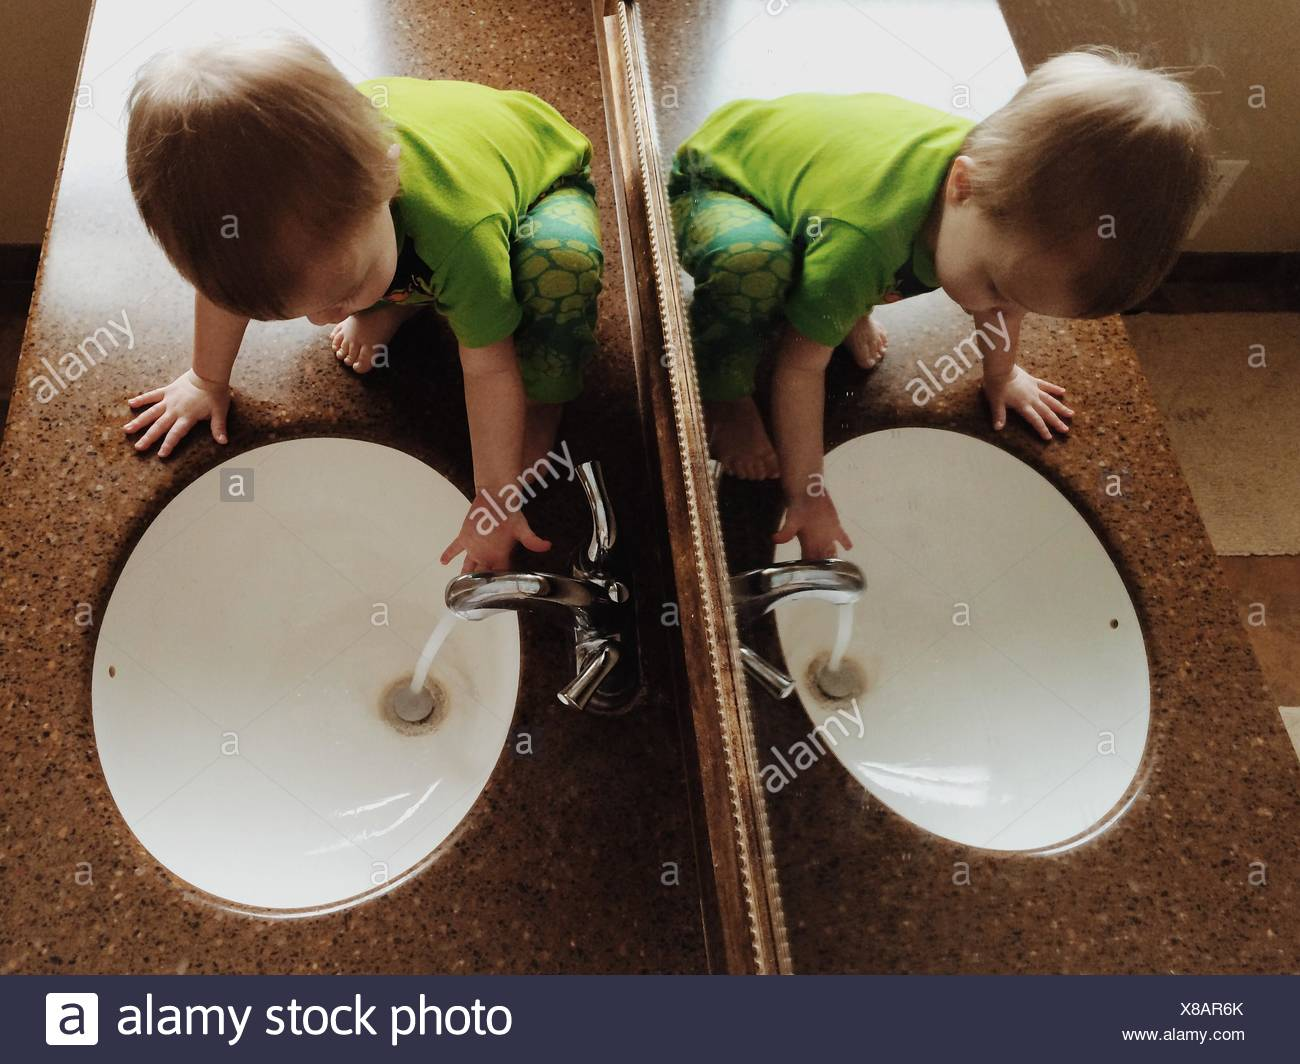 Boy Playing In Water In Bathroom Sink - Stock Image